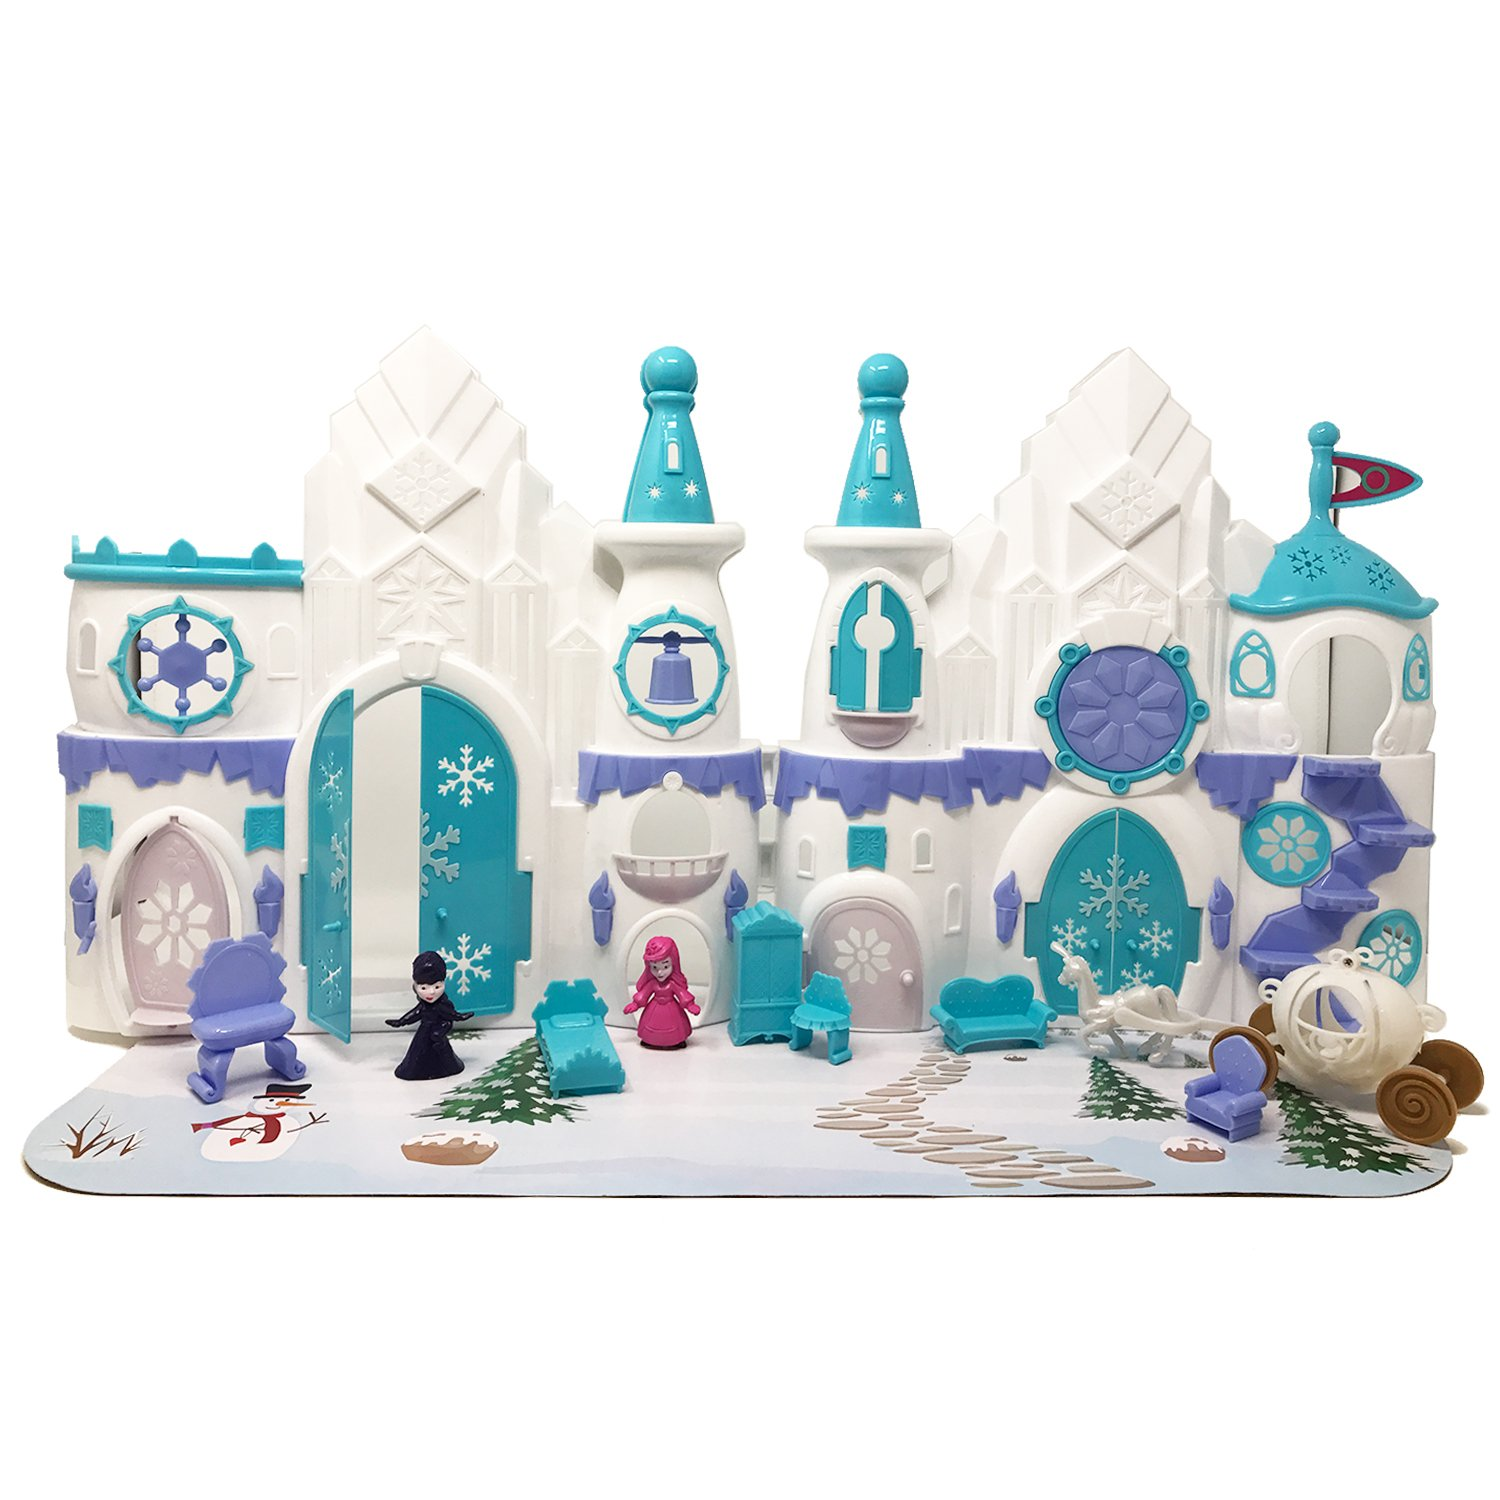 Boley Ice Castle人形House Play Boley Toy – 11 PC折りたたみ可能なドールハウス、A Perfect Carriage Girls Toy With Pretend Play Magical Carriage and More。 B01N20RKY3, オカザキシ:18dabbf7 --- kutter.pl